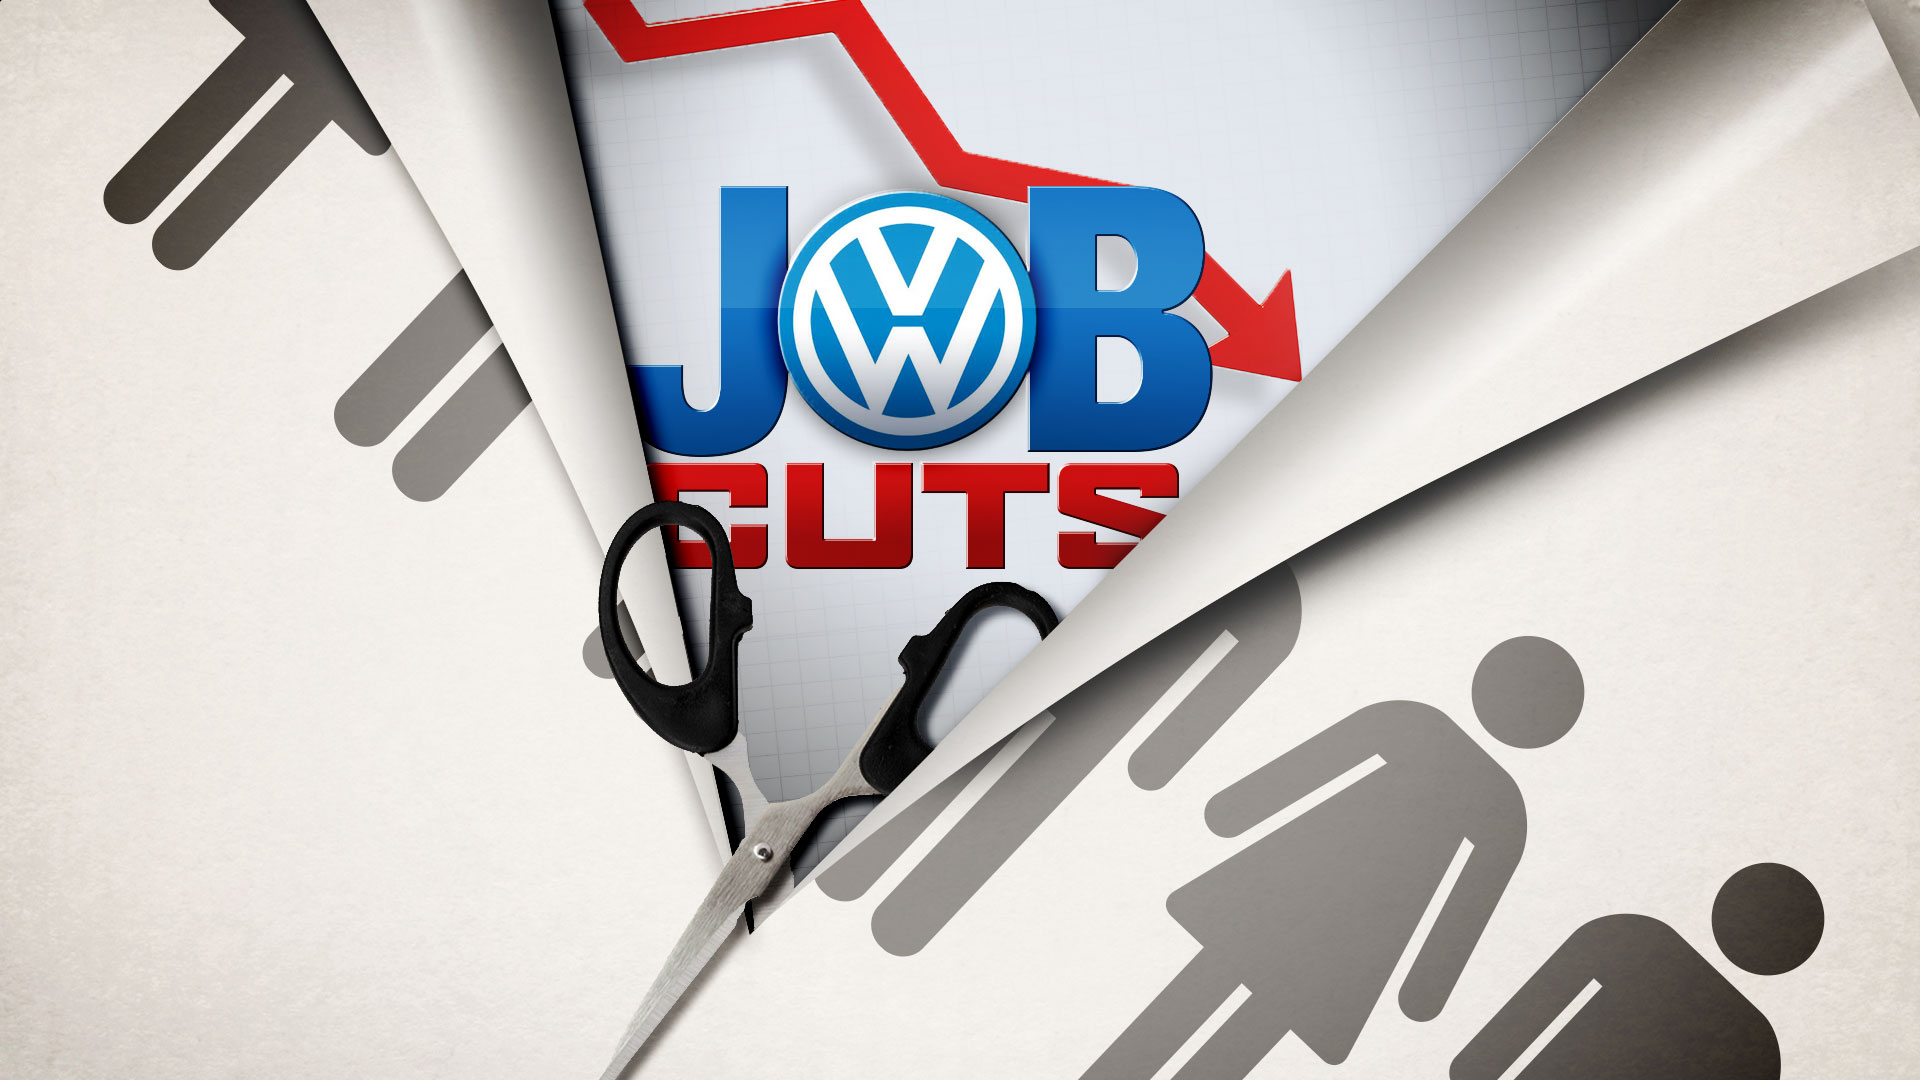 Volkswagon-Job-Cuts-111816-cc